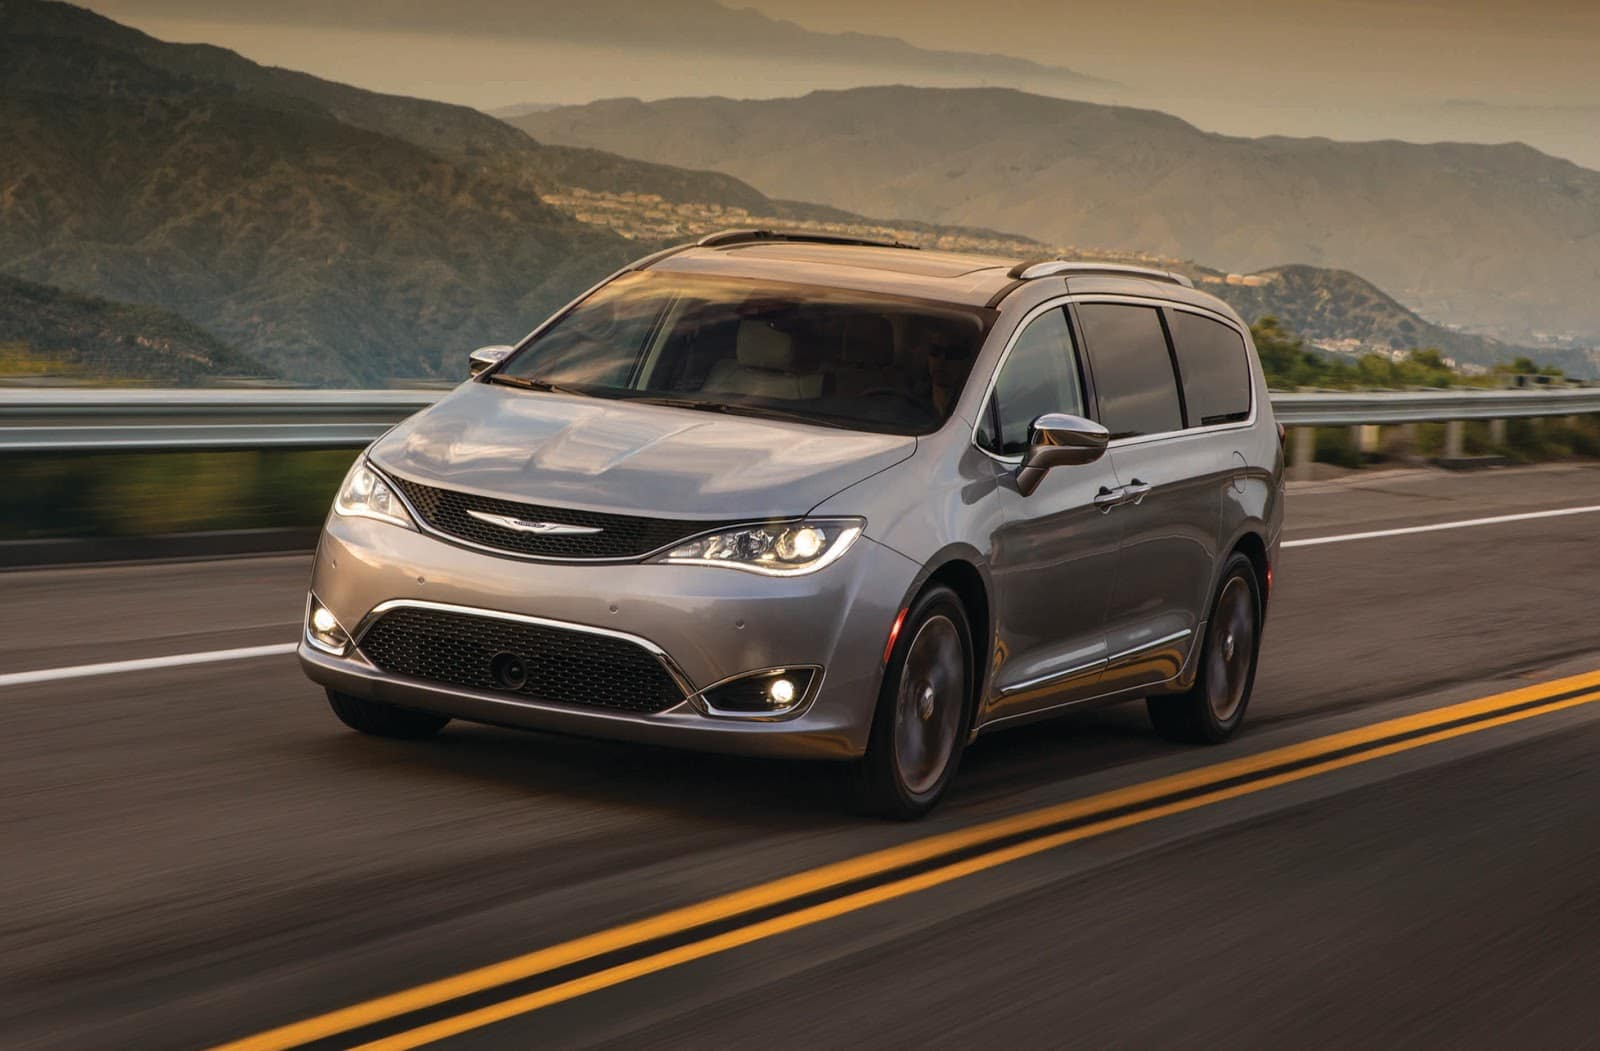 Silver 2019 Chrysler Pacifica Driving on Highway with Mountains in Background